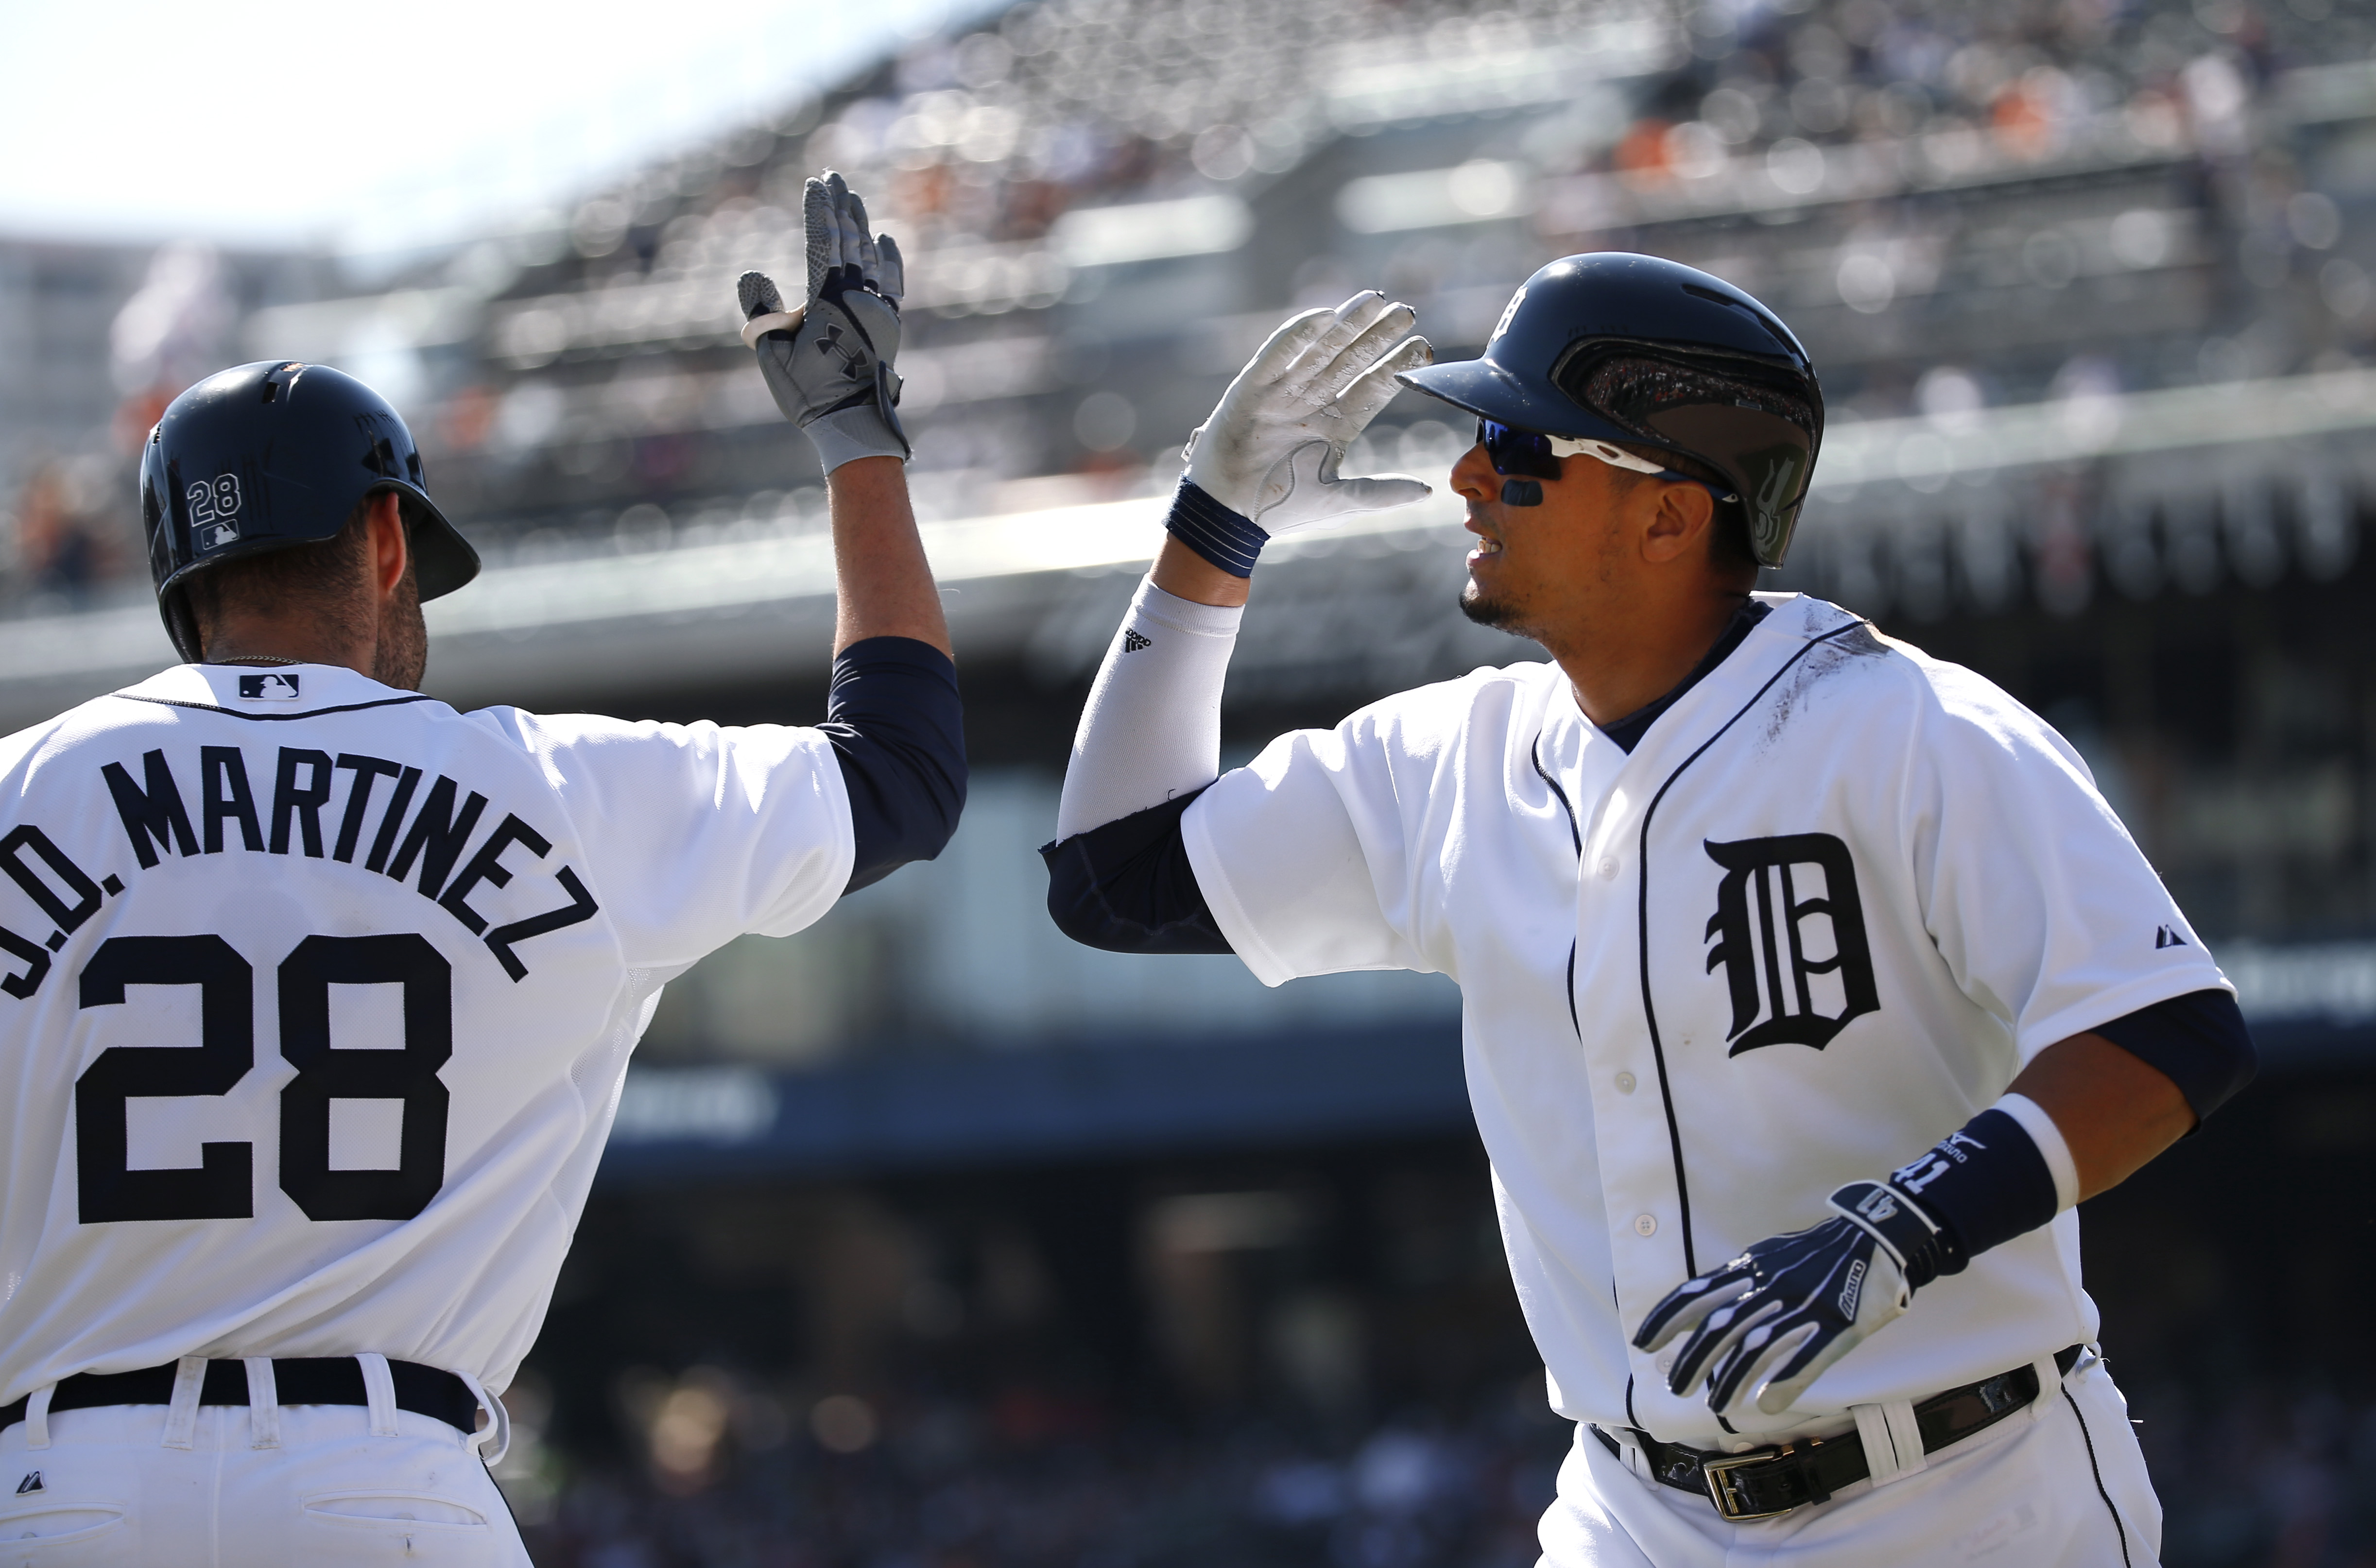 Detroit Tigers' Victor Martinez, right, celebrates his two-run home run of off Chicago White Sox pitcher Frankie Montas with teammate J.D. Martinez (28) in the first inning of a baseball game in Detroit, Wednesday, Sept. 23, 2015. (AP Photo/Paul Sancya)